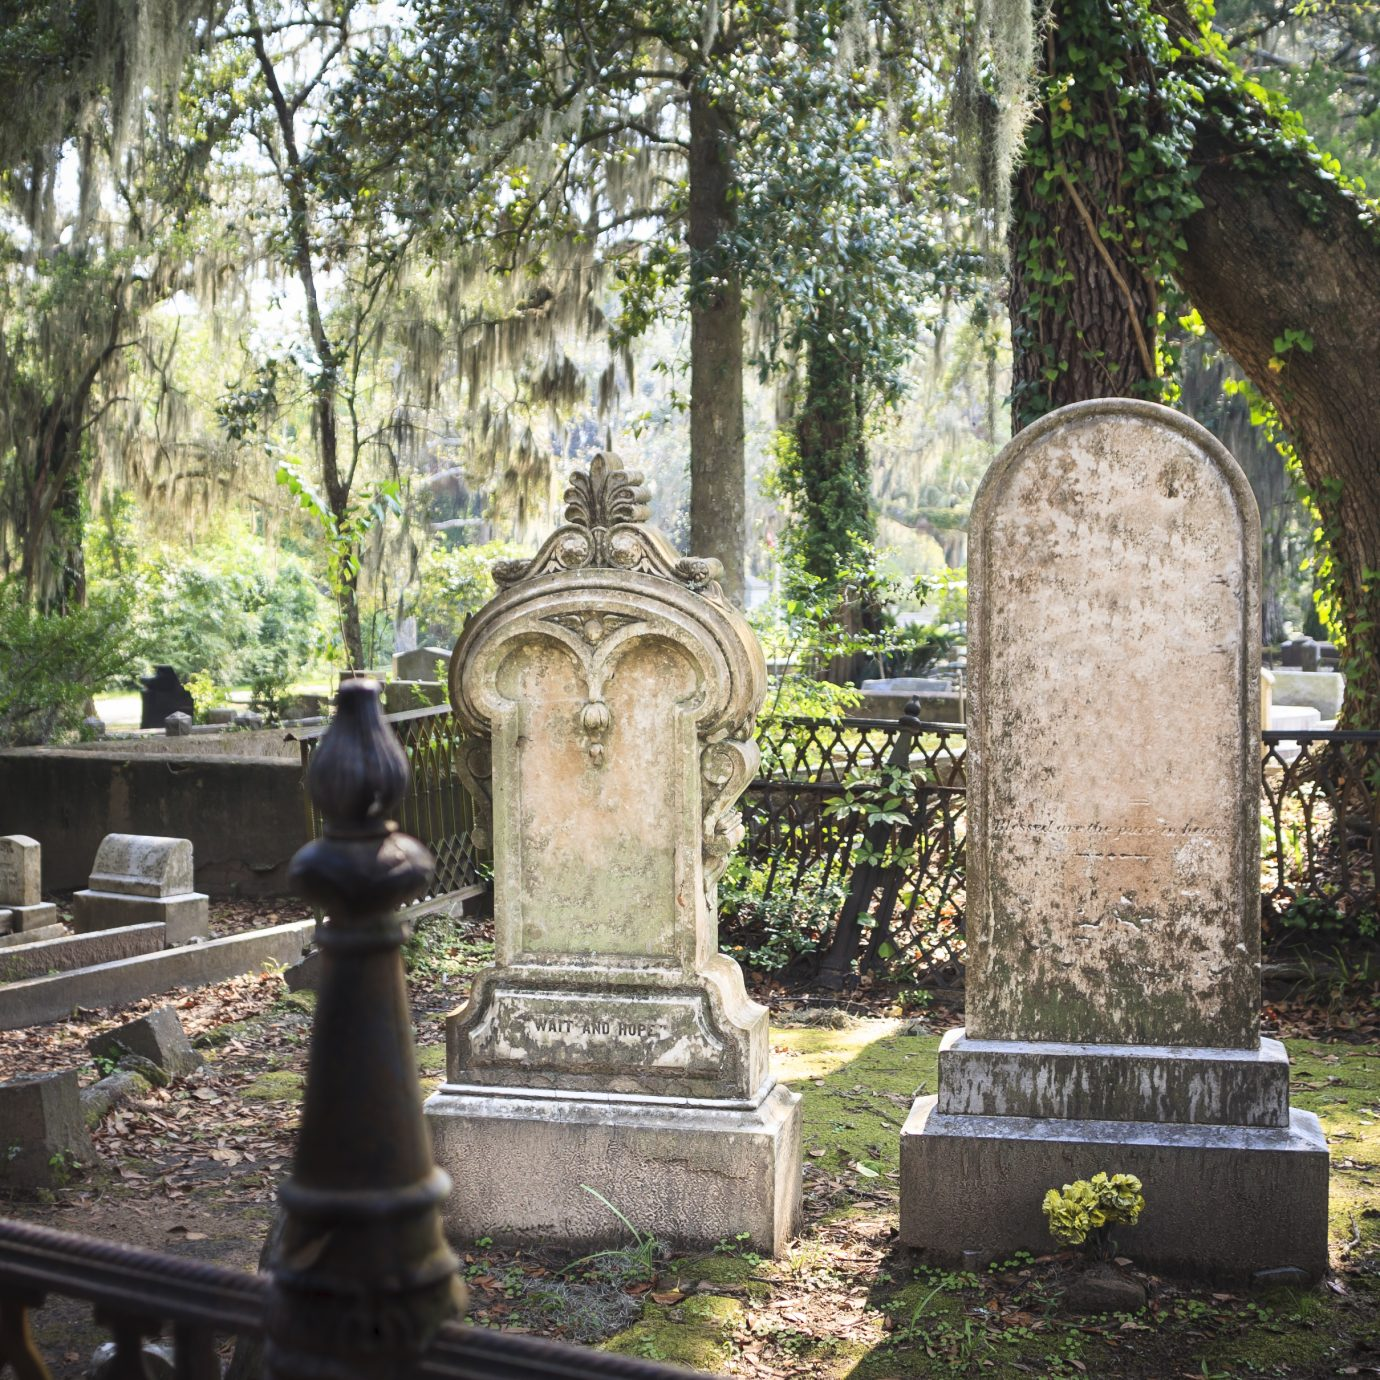 Tombstones and gravesite at Bonaventure Cemetery, Savannah, Georgia.